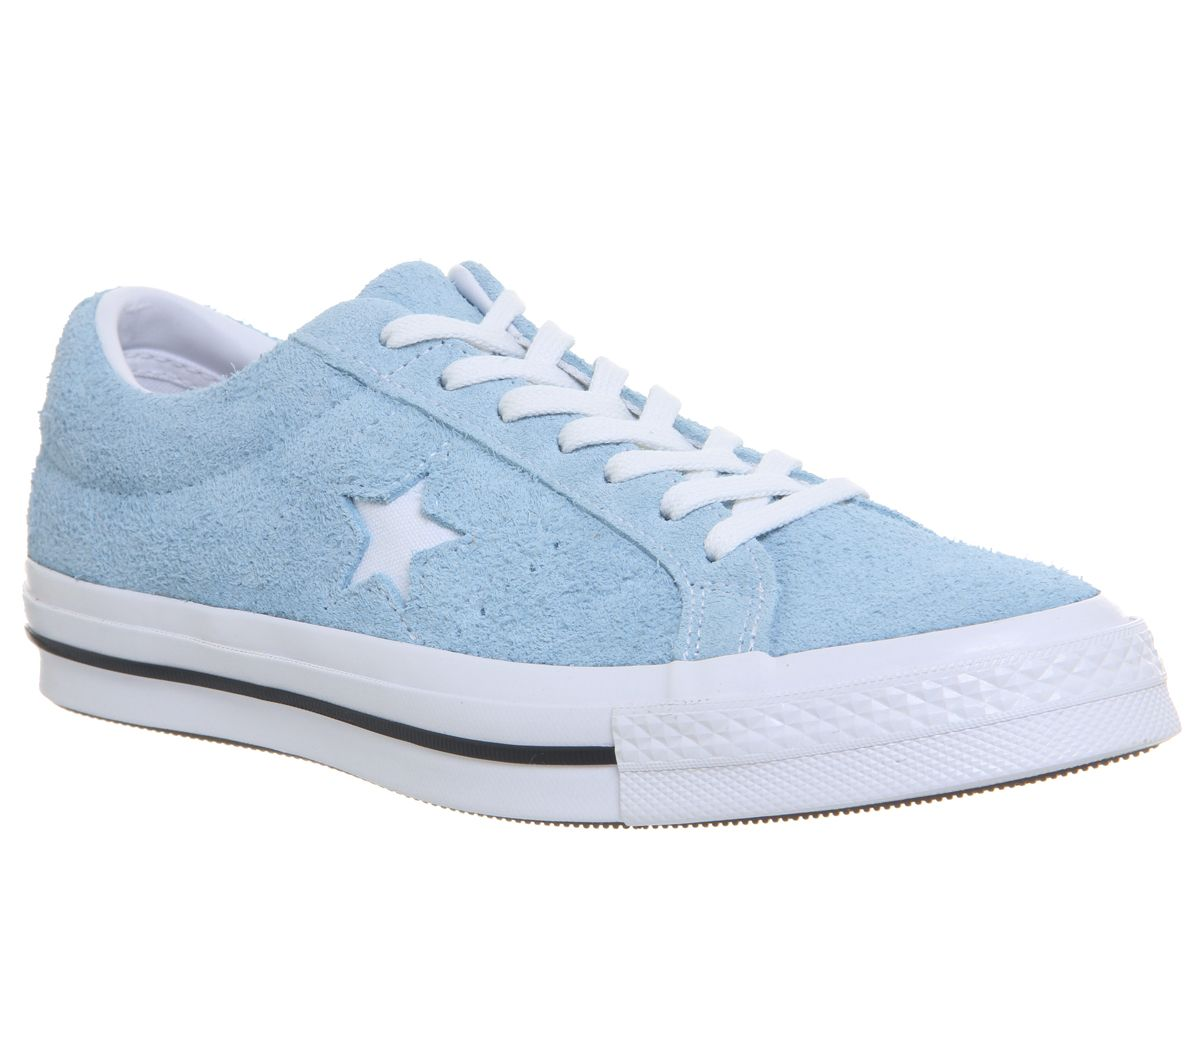 1793866bf61d Converse One Star Trainers Shoreline Blue White - Hers trainers